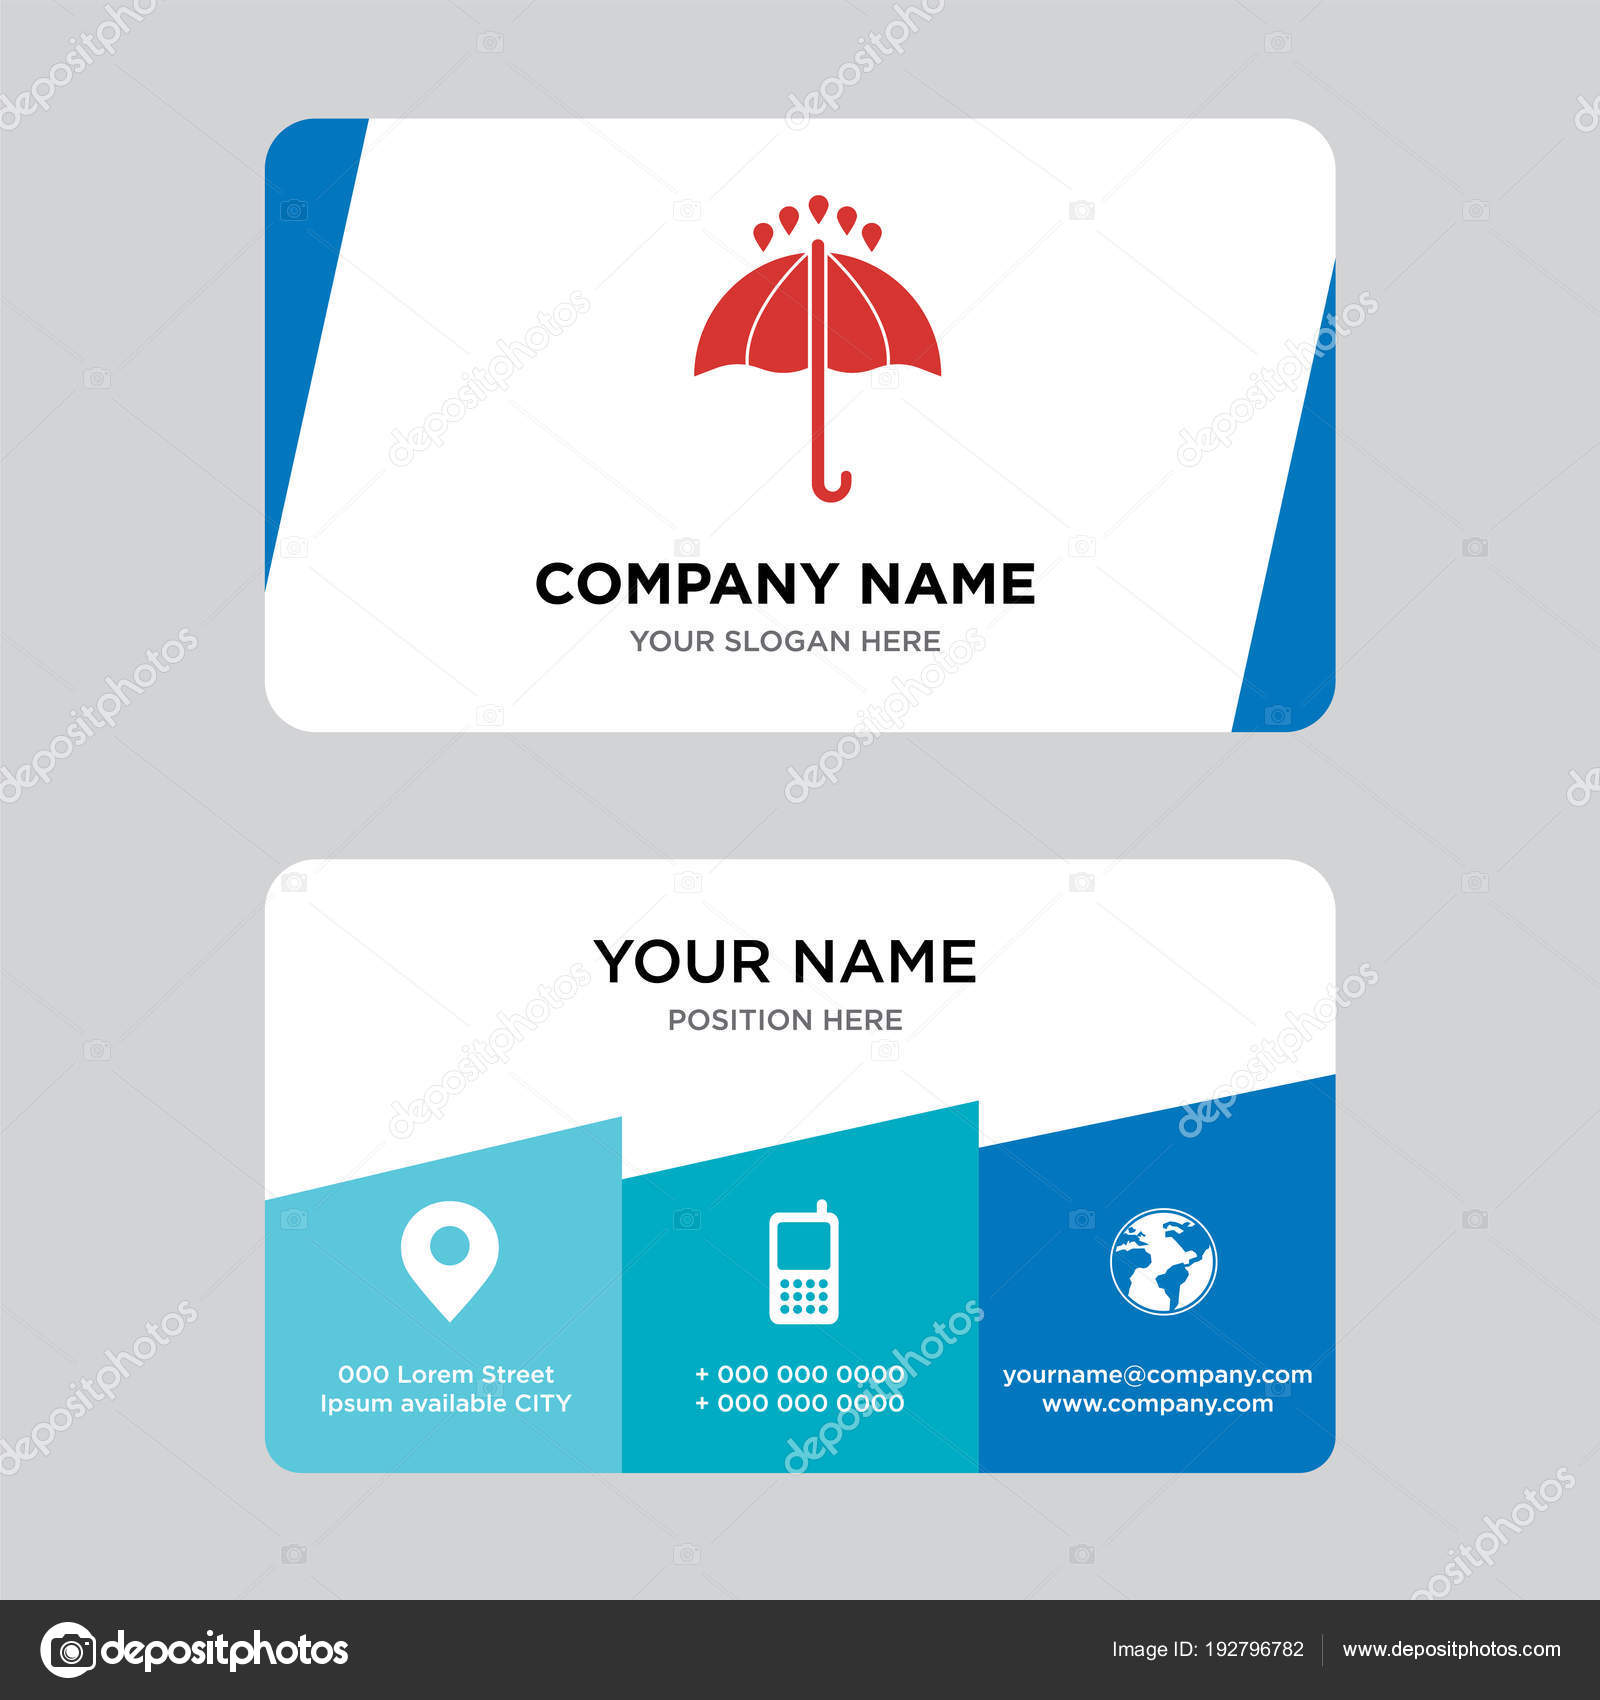 24 hours business card design template — Stock Vector ...